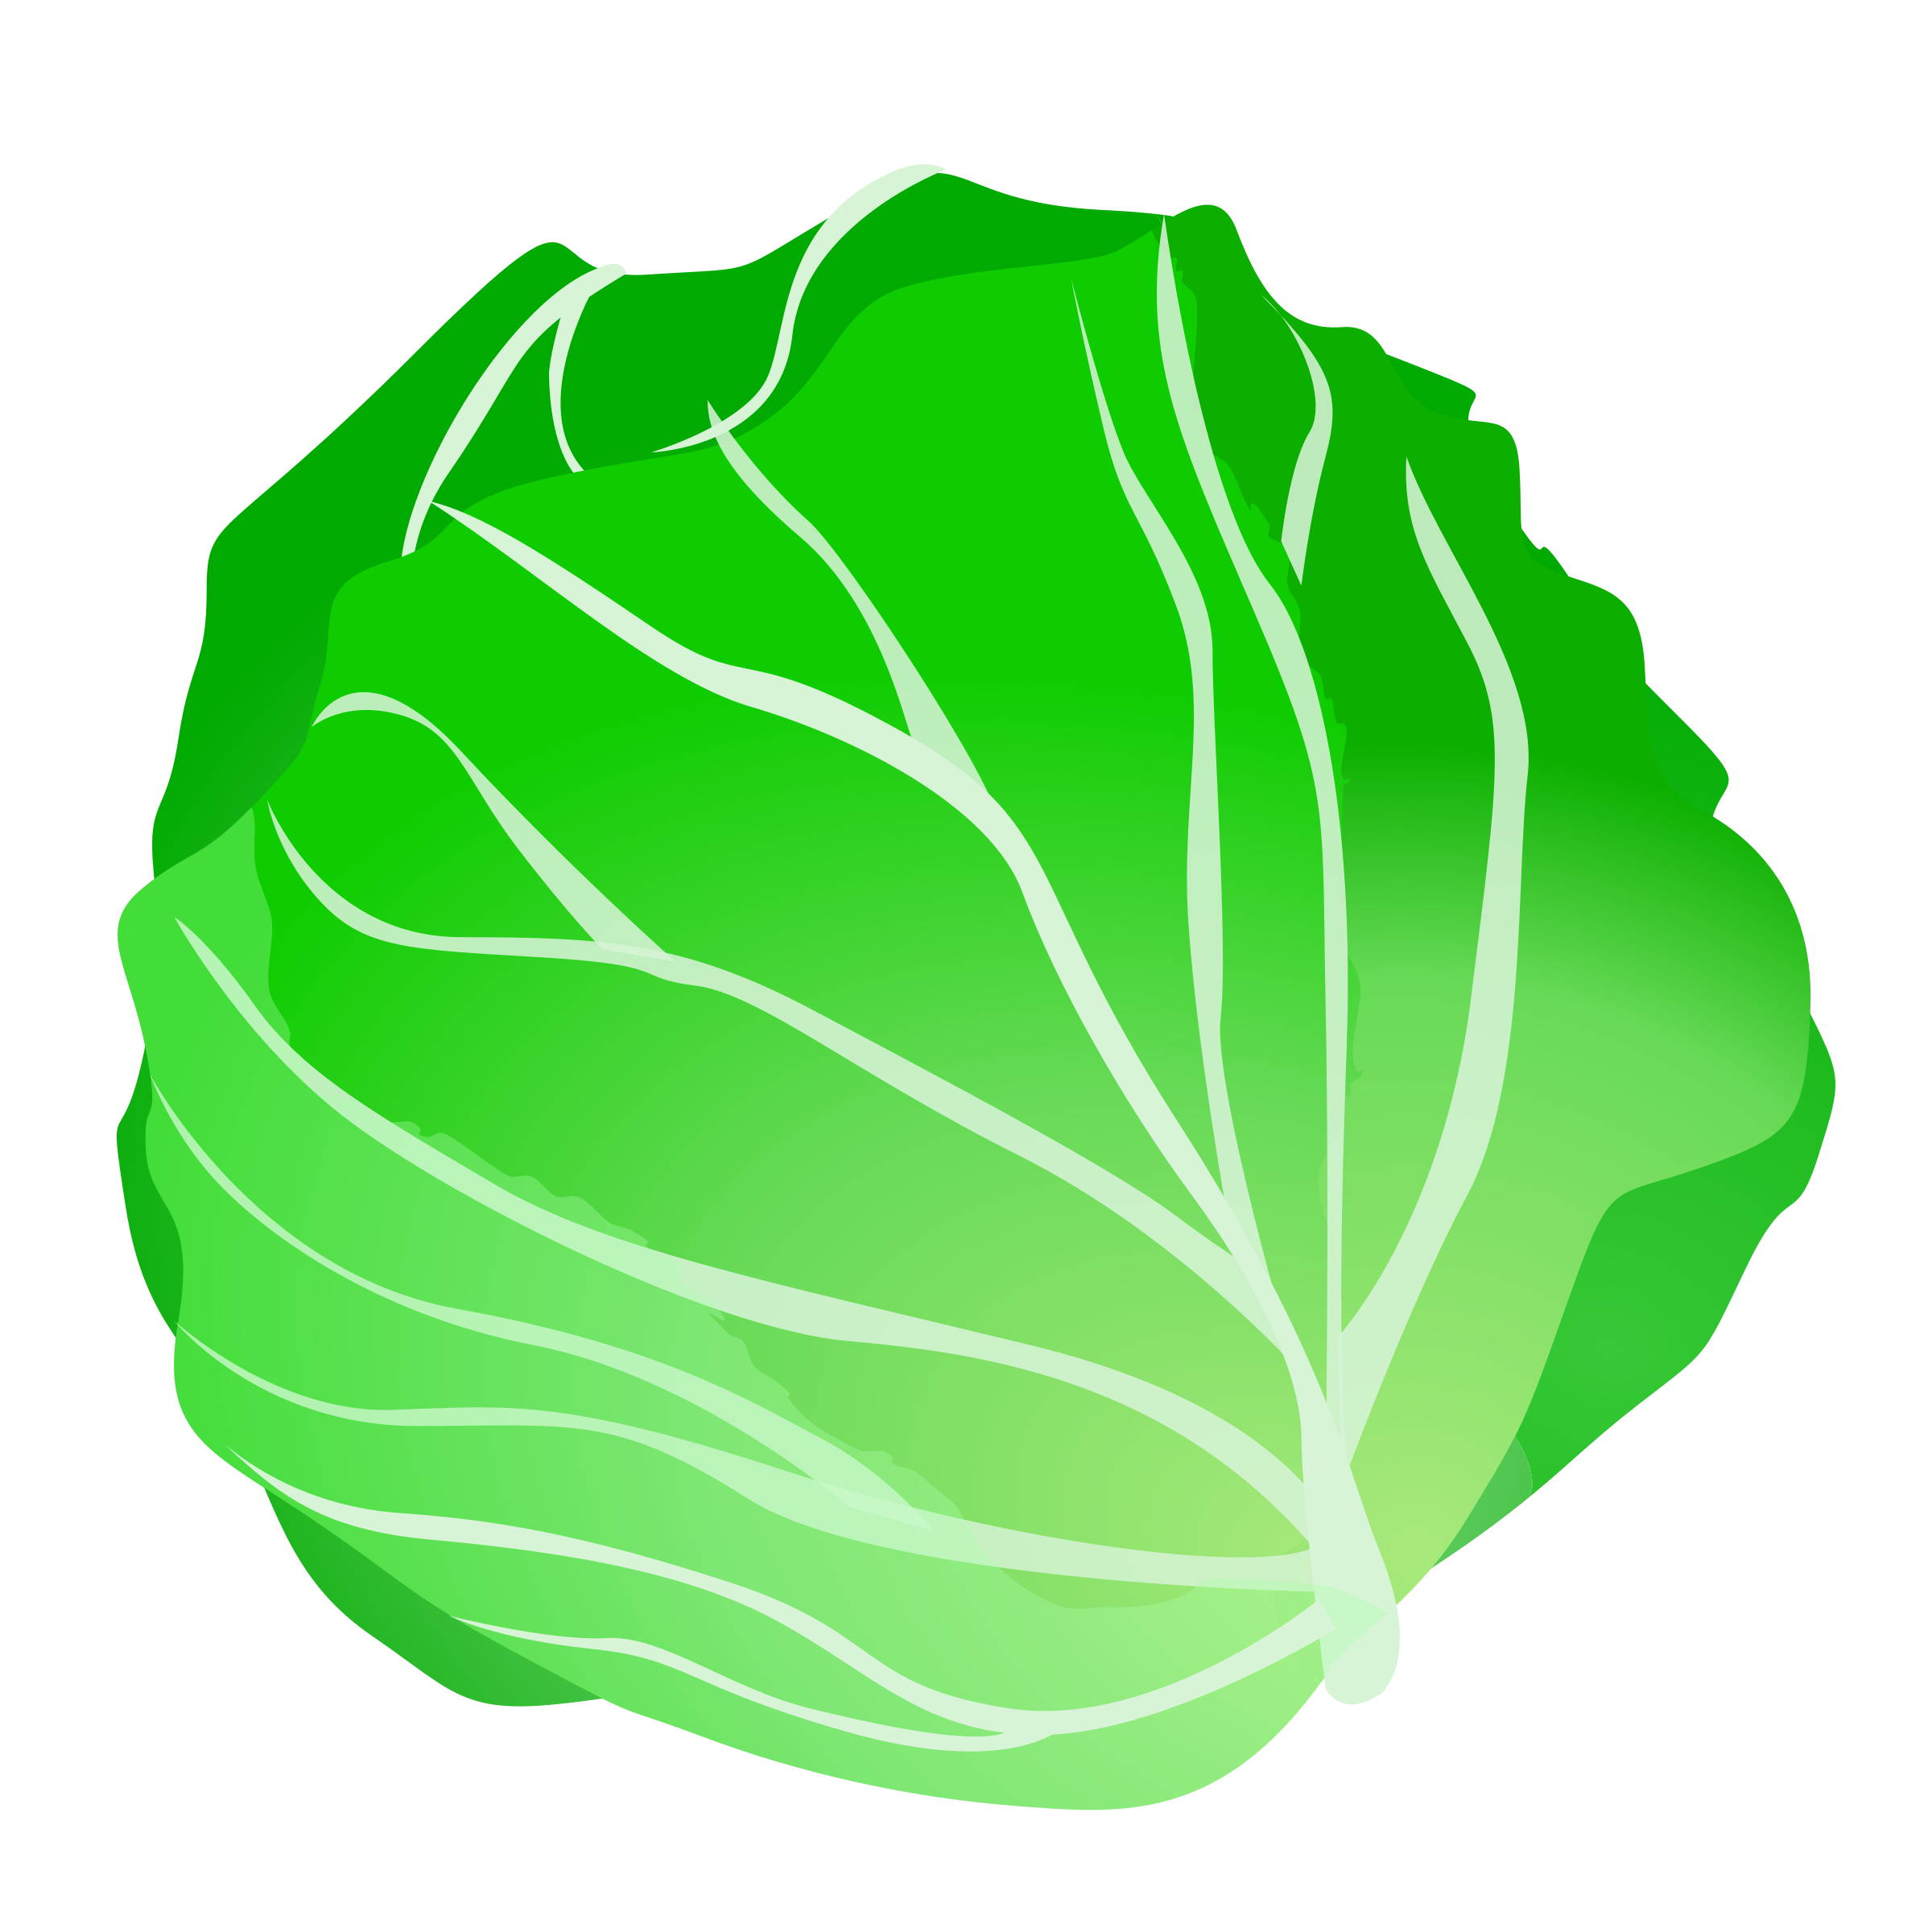 Lettuce clipart cartoon, Lettuce cartoon Transparent FREE.